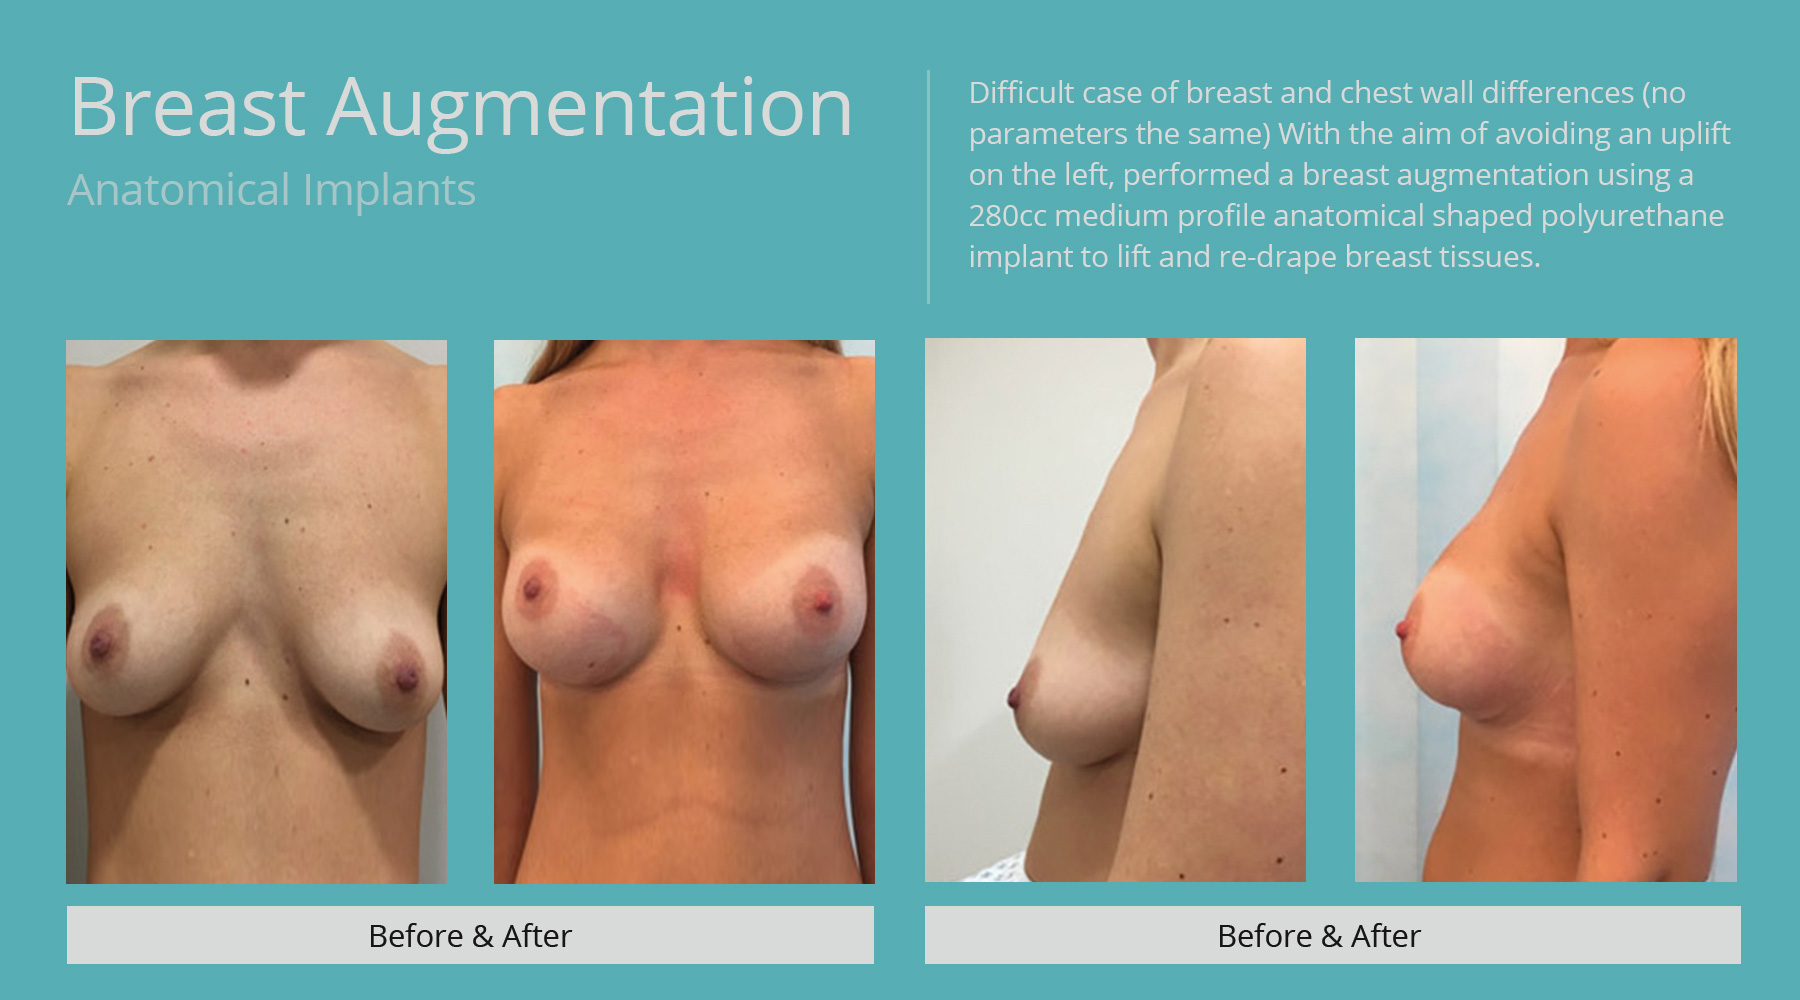 Breast-Augmentation-anatomical-13